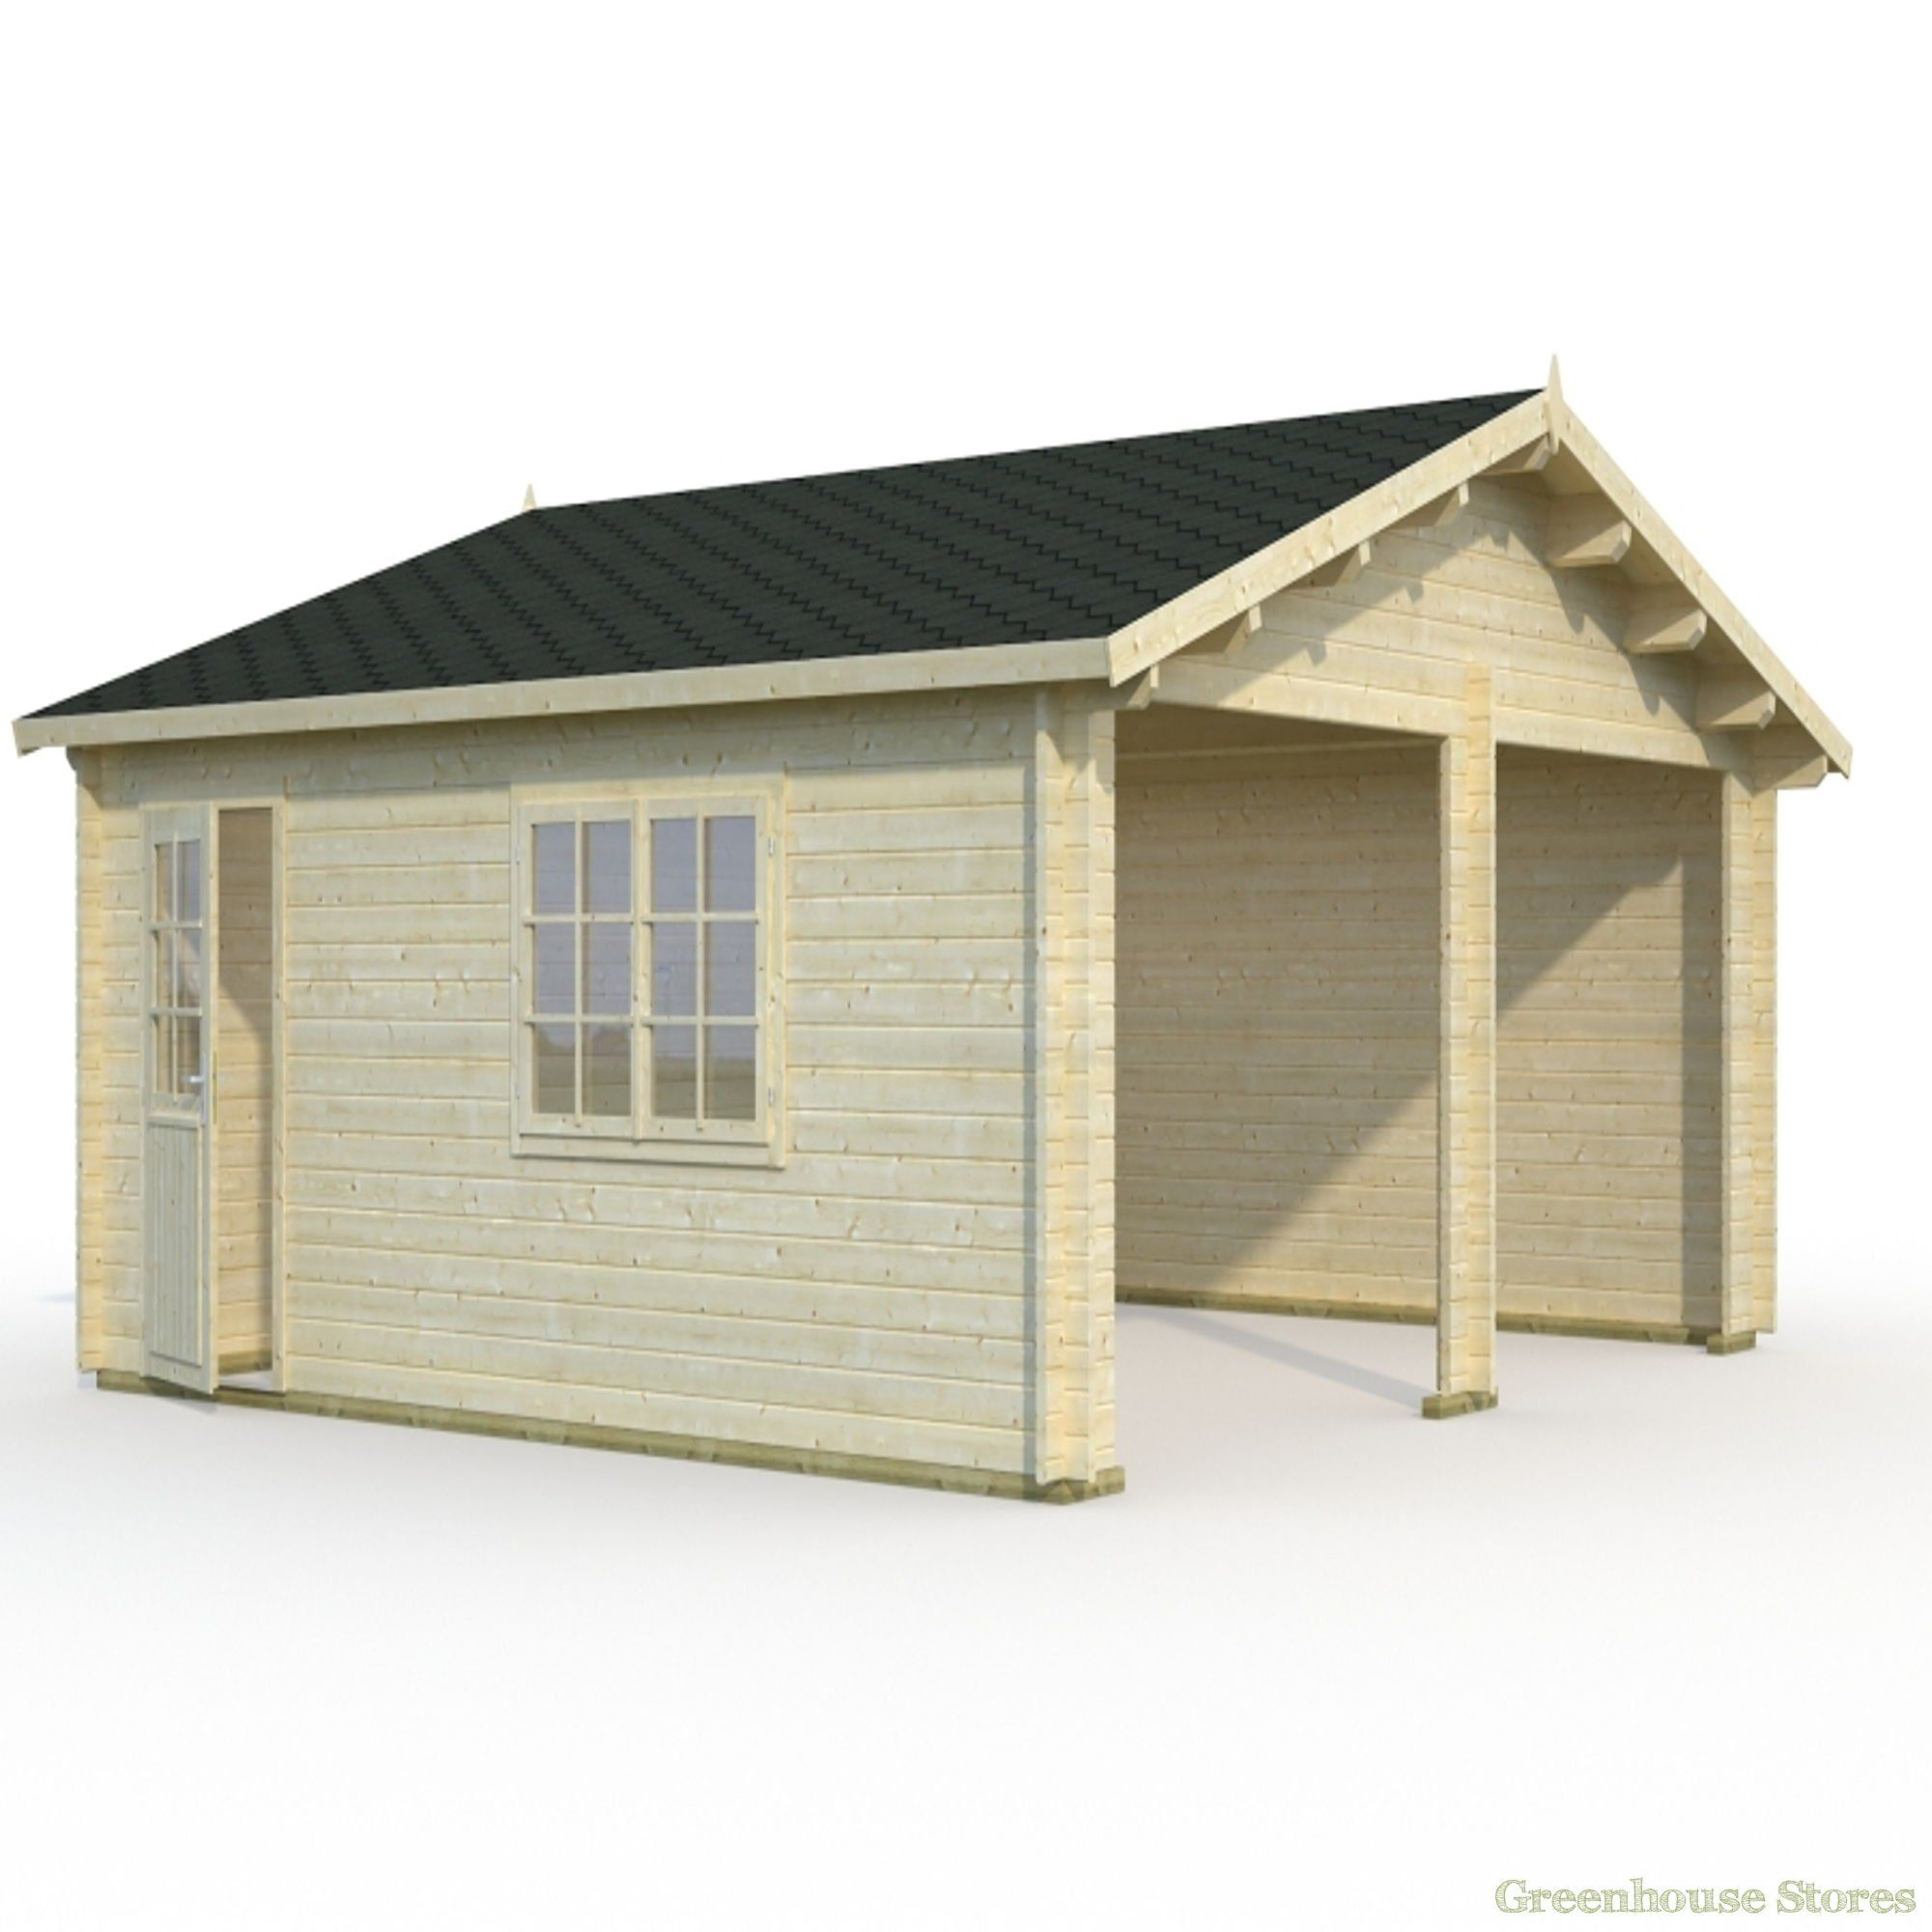 Palmako 18ft x 16ft Double Wooden Garage from Greenhouse